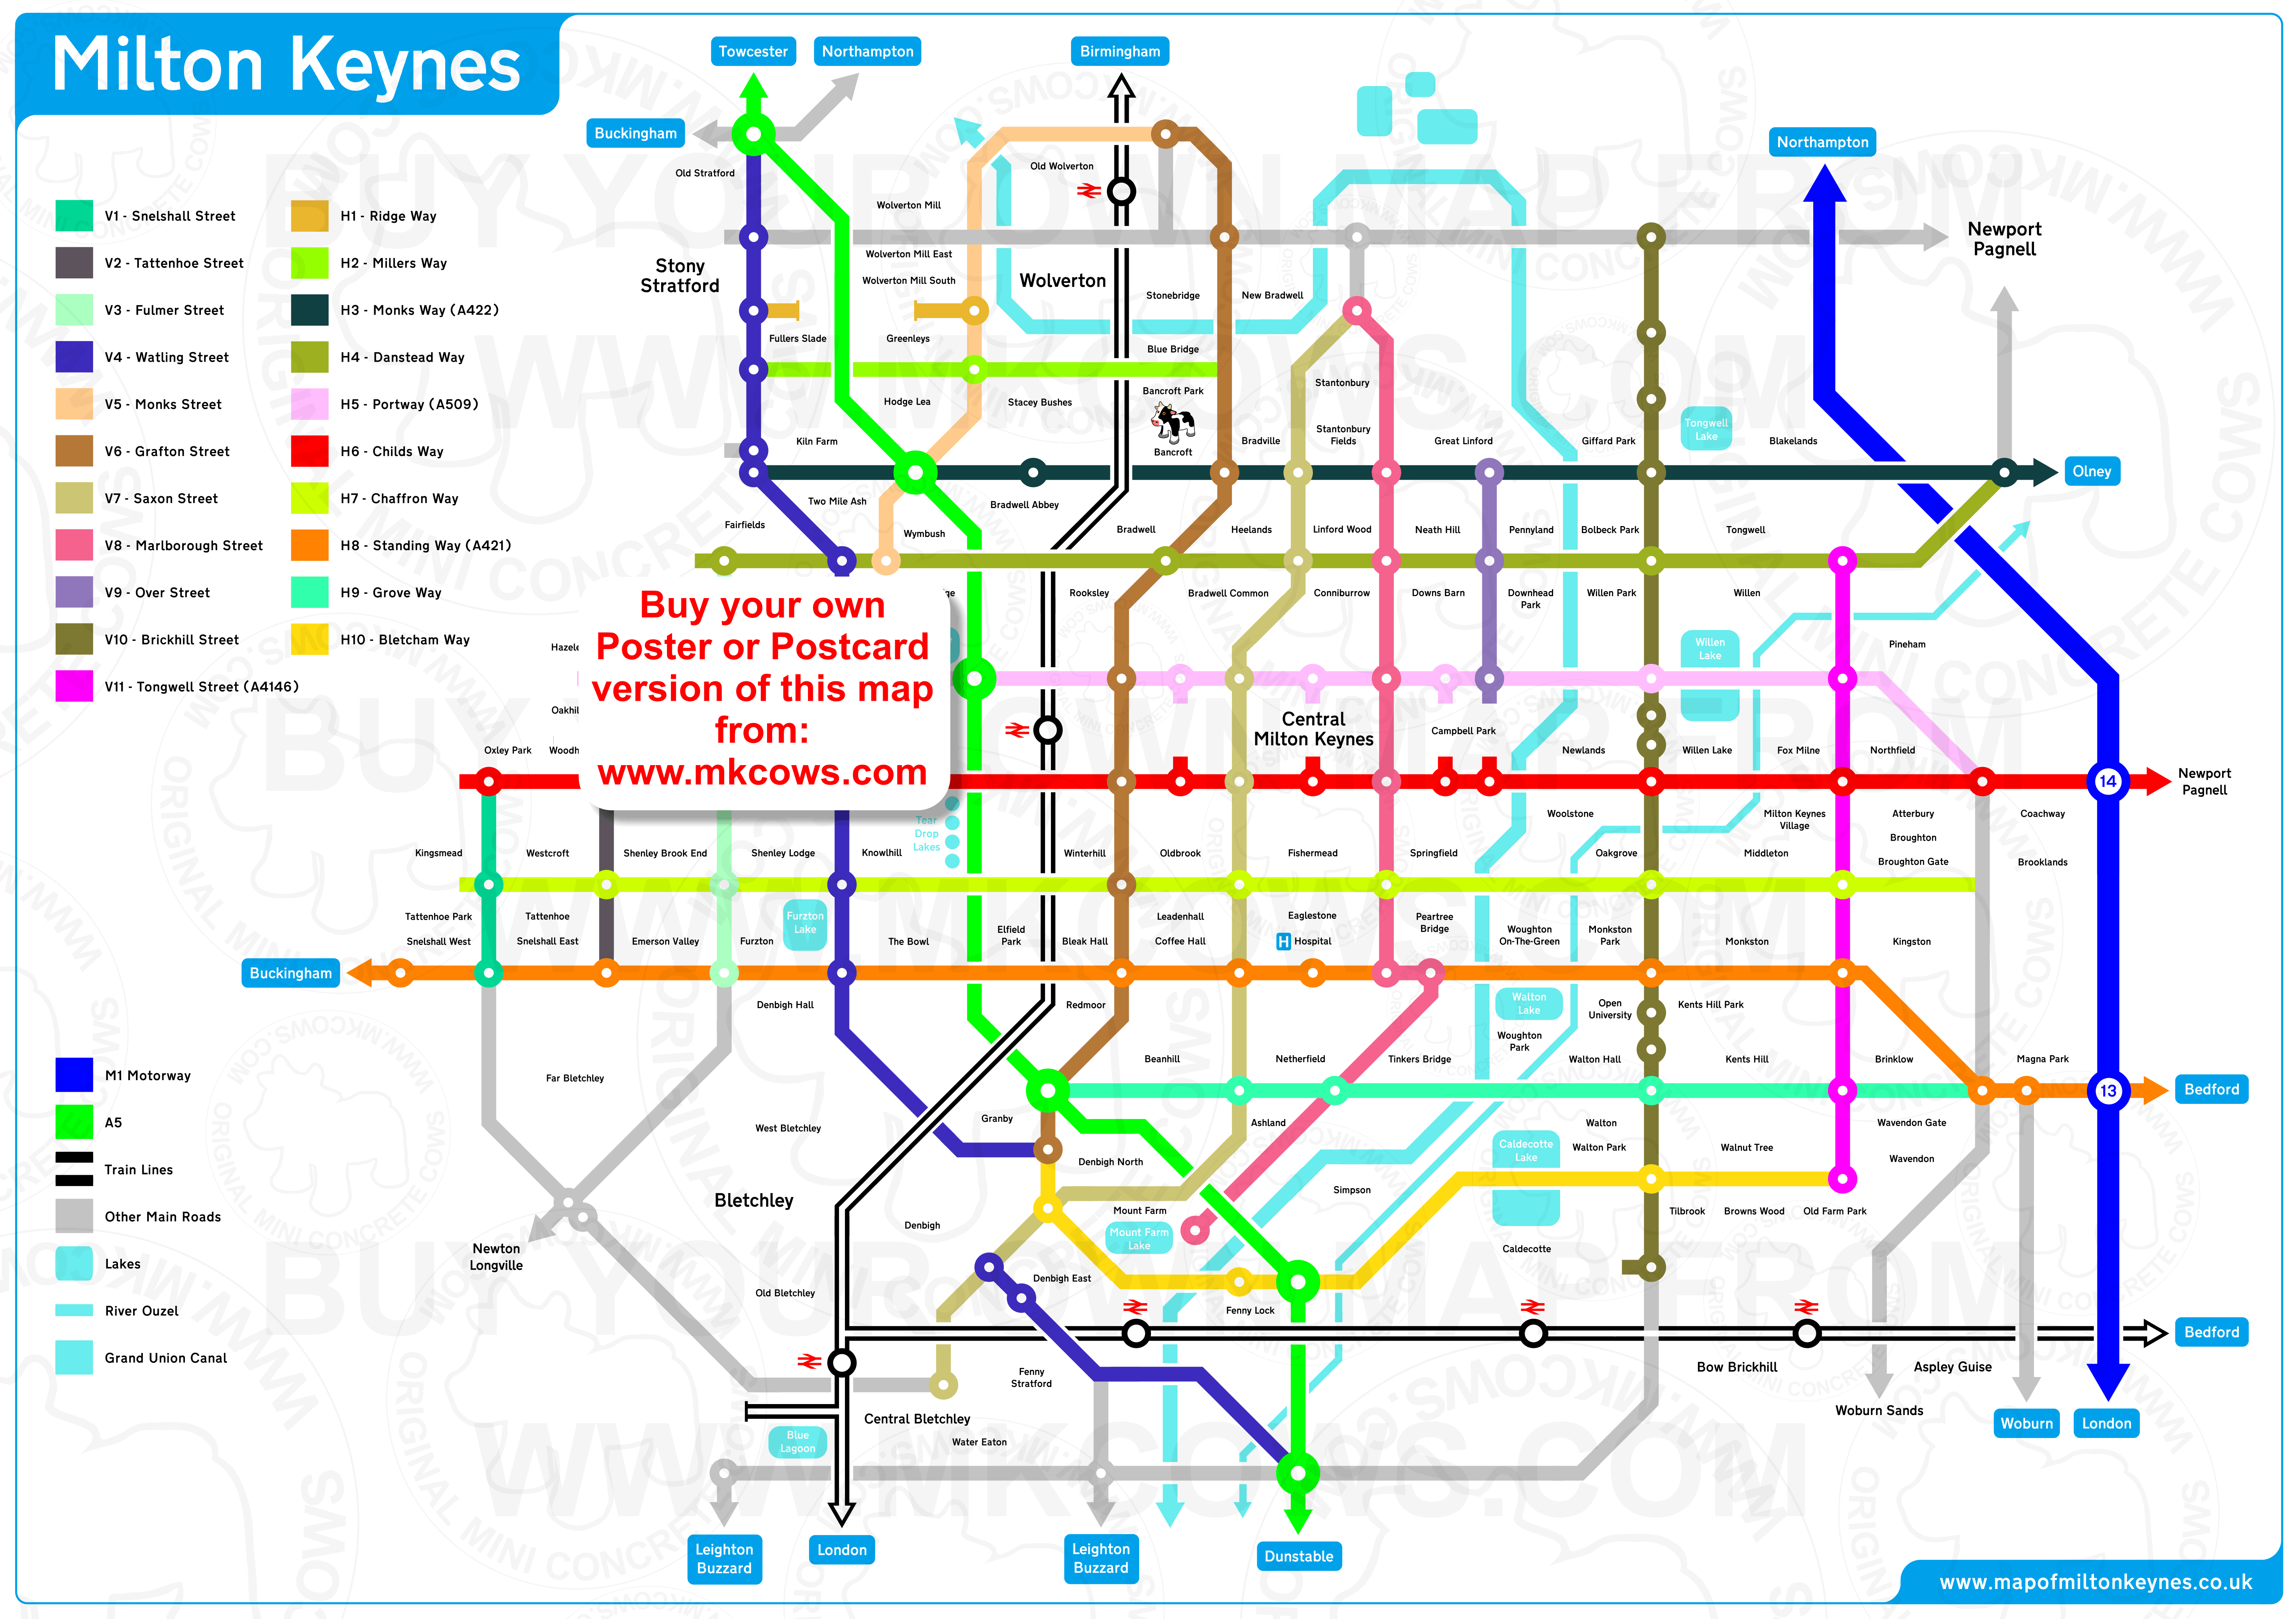 A fabulous new design for the MK grid system map based on London